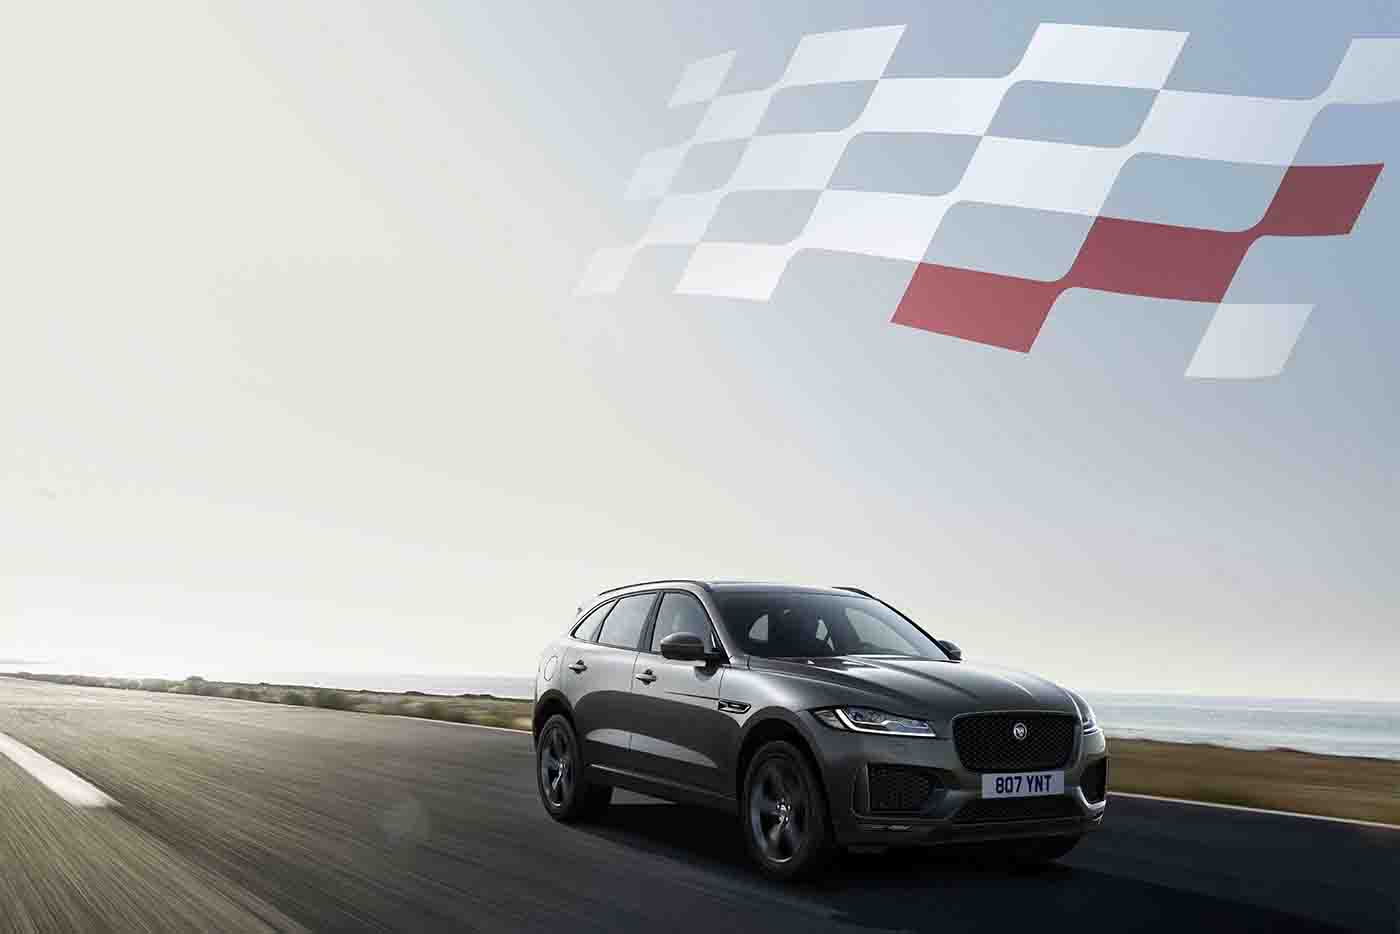 jag-f-pace-20my-chequered-flag-190319-038-glhd.jpg